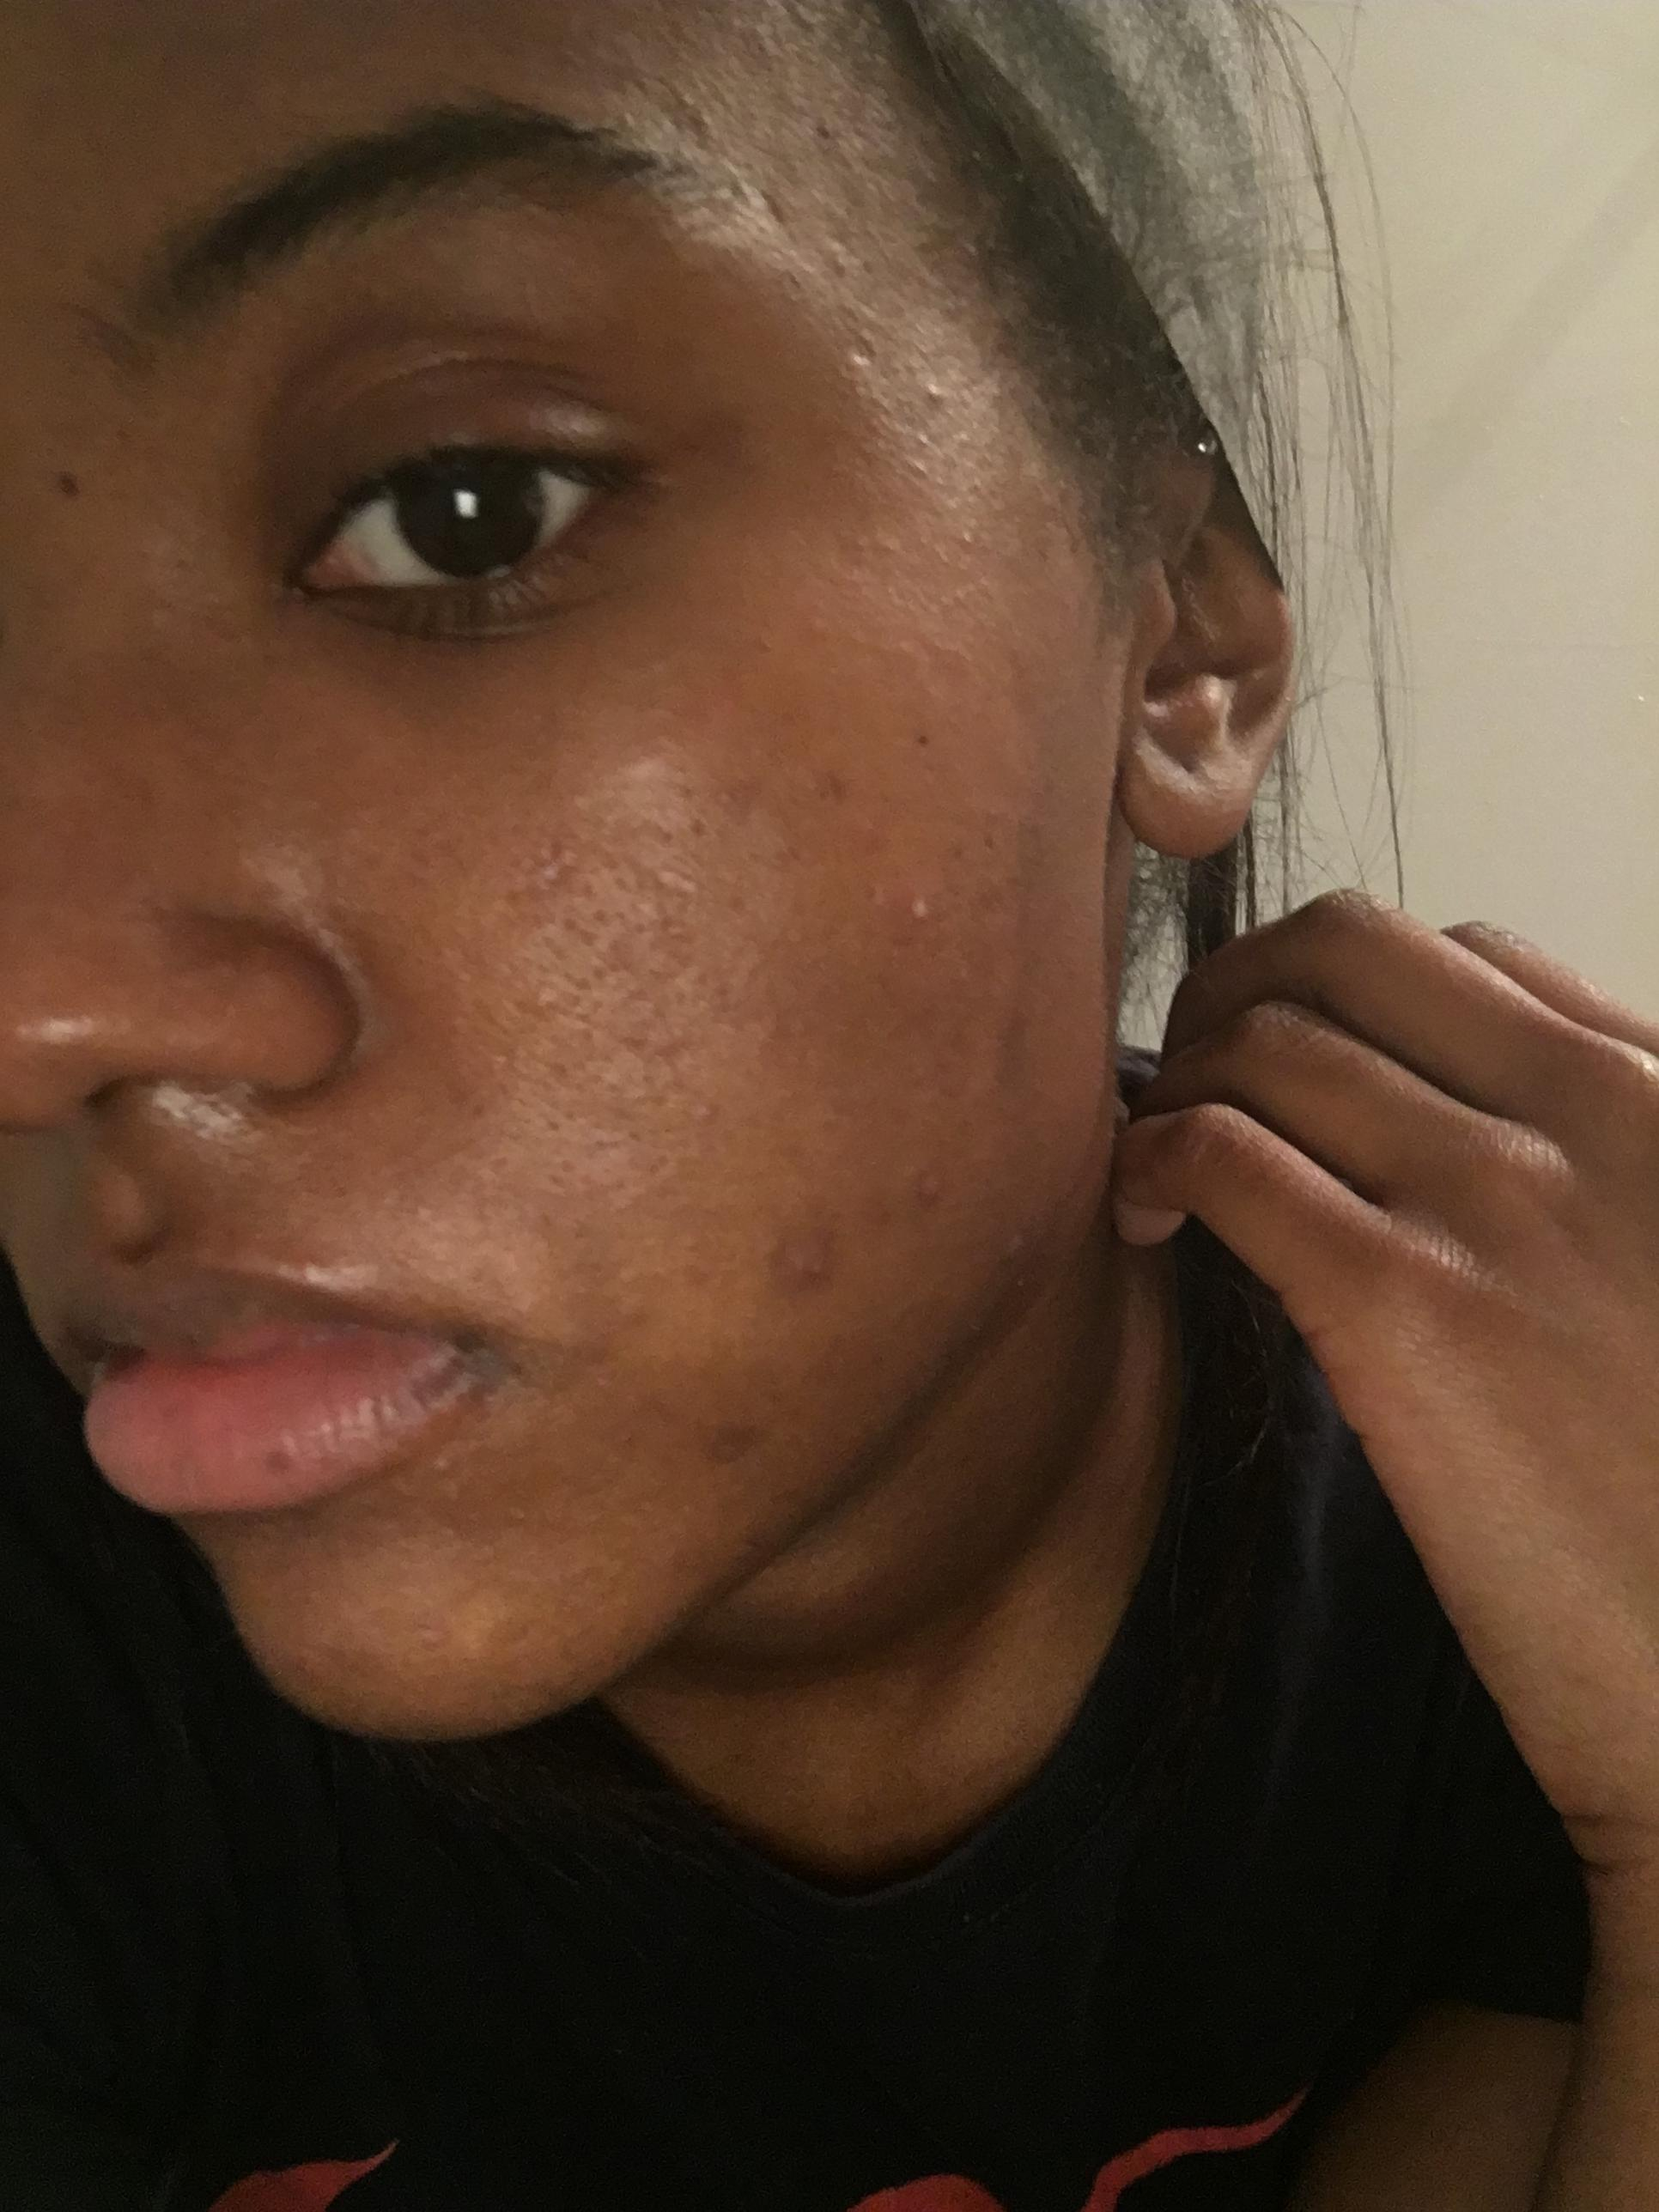 Could You Be Using Too Much ? - General acne discussion